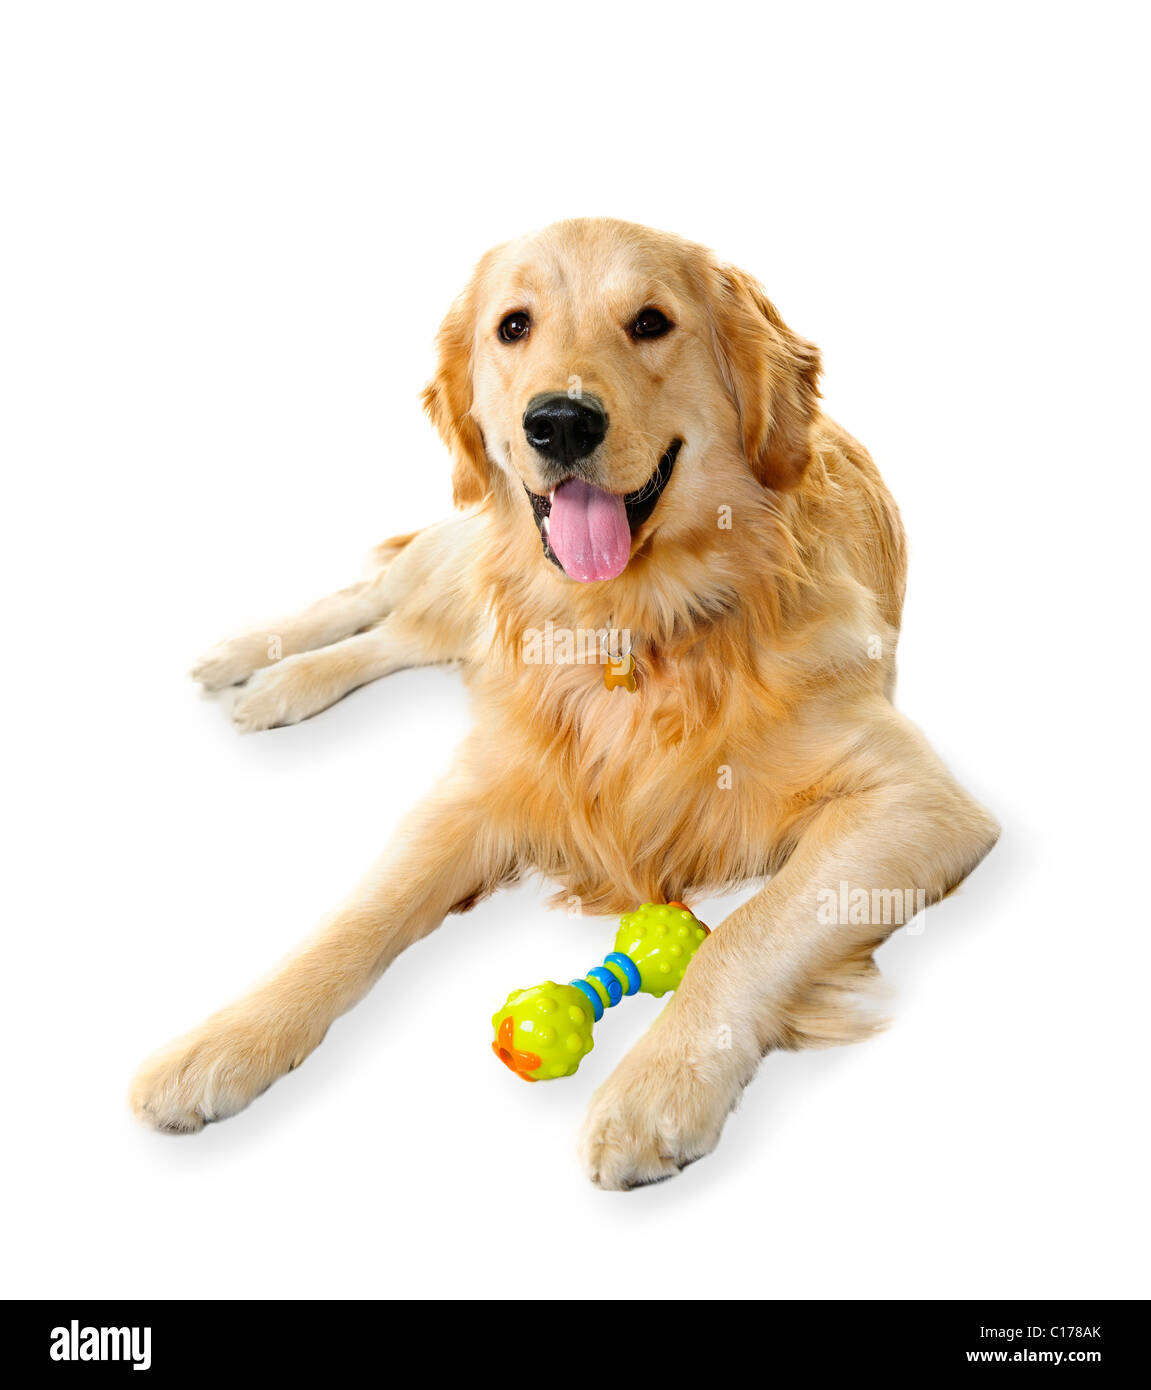 Golden retriever pet dog laying down with toy isolated on white background - Stock Image